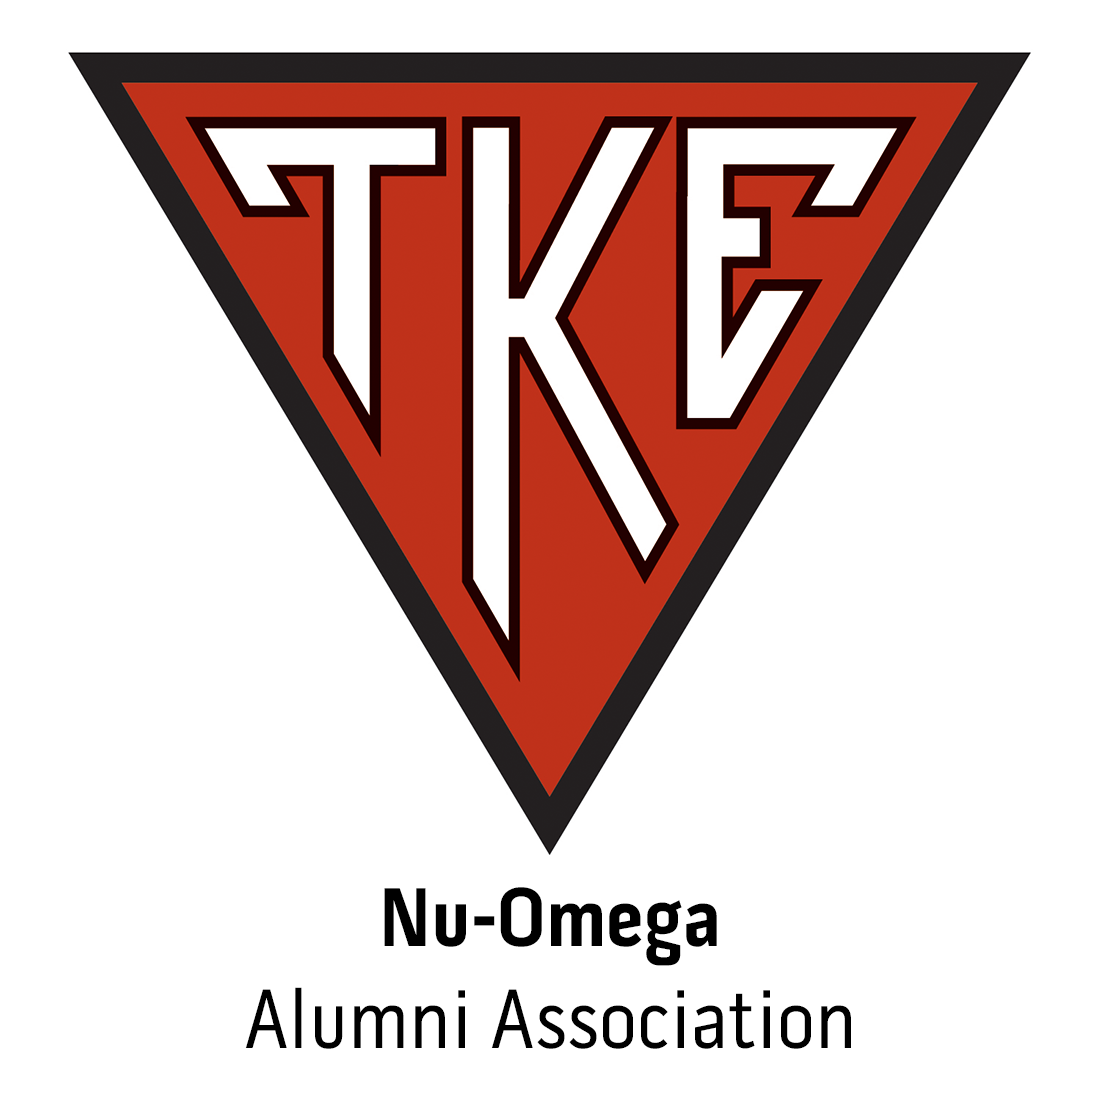 Nu-Omega Alumni Association at William Paterson Univeristy